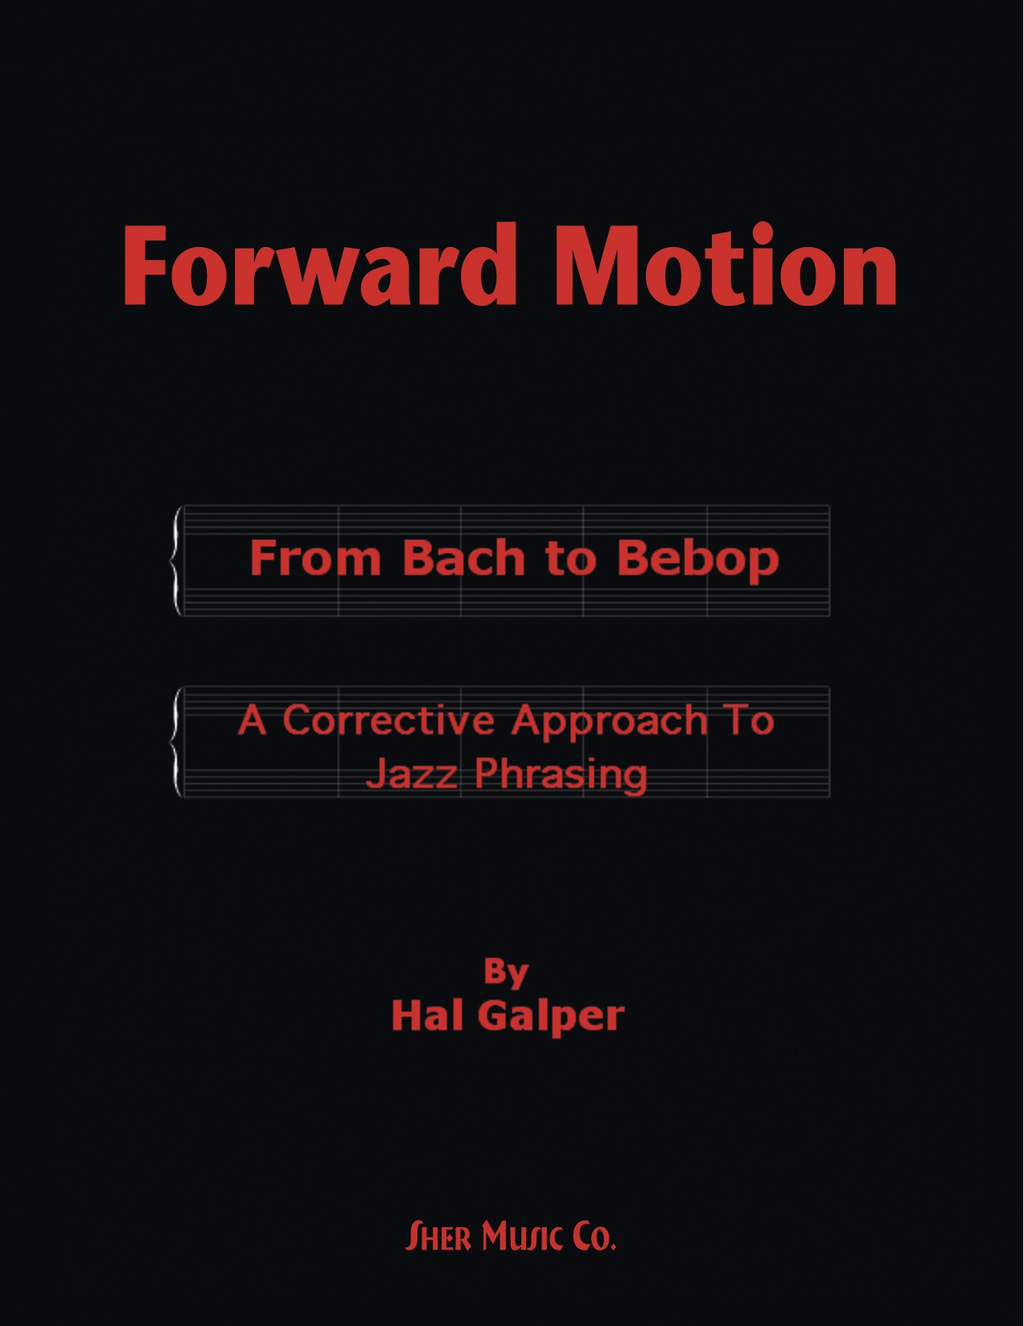 Forward Motion